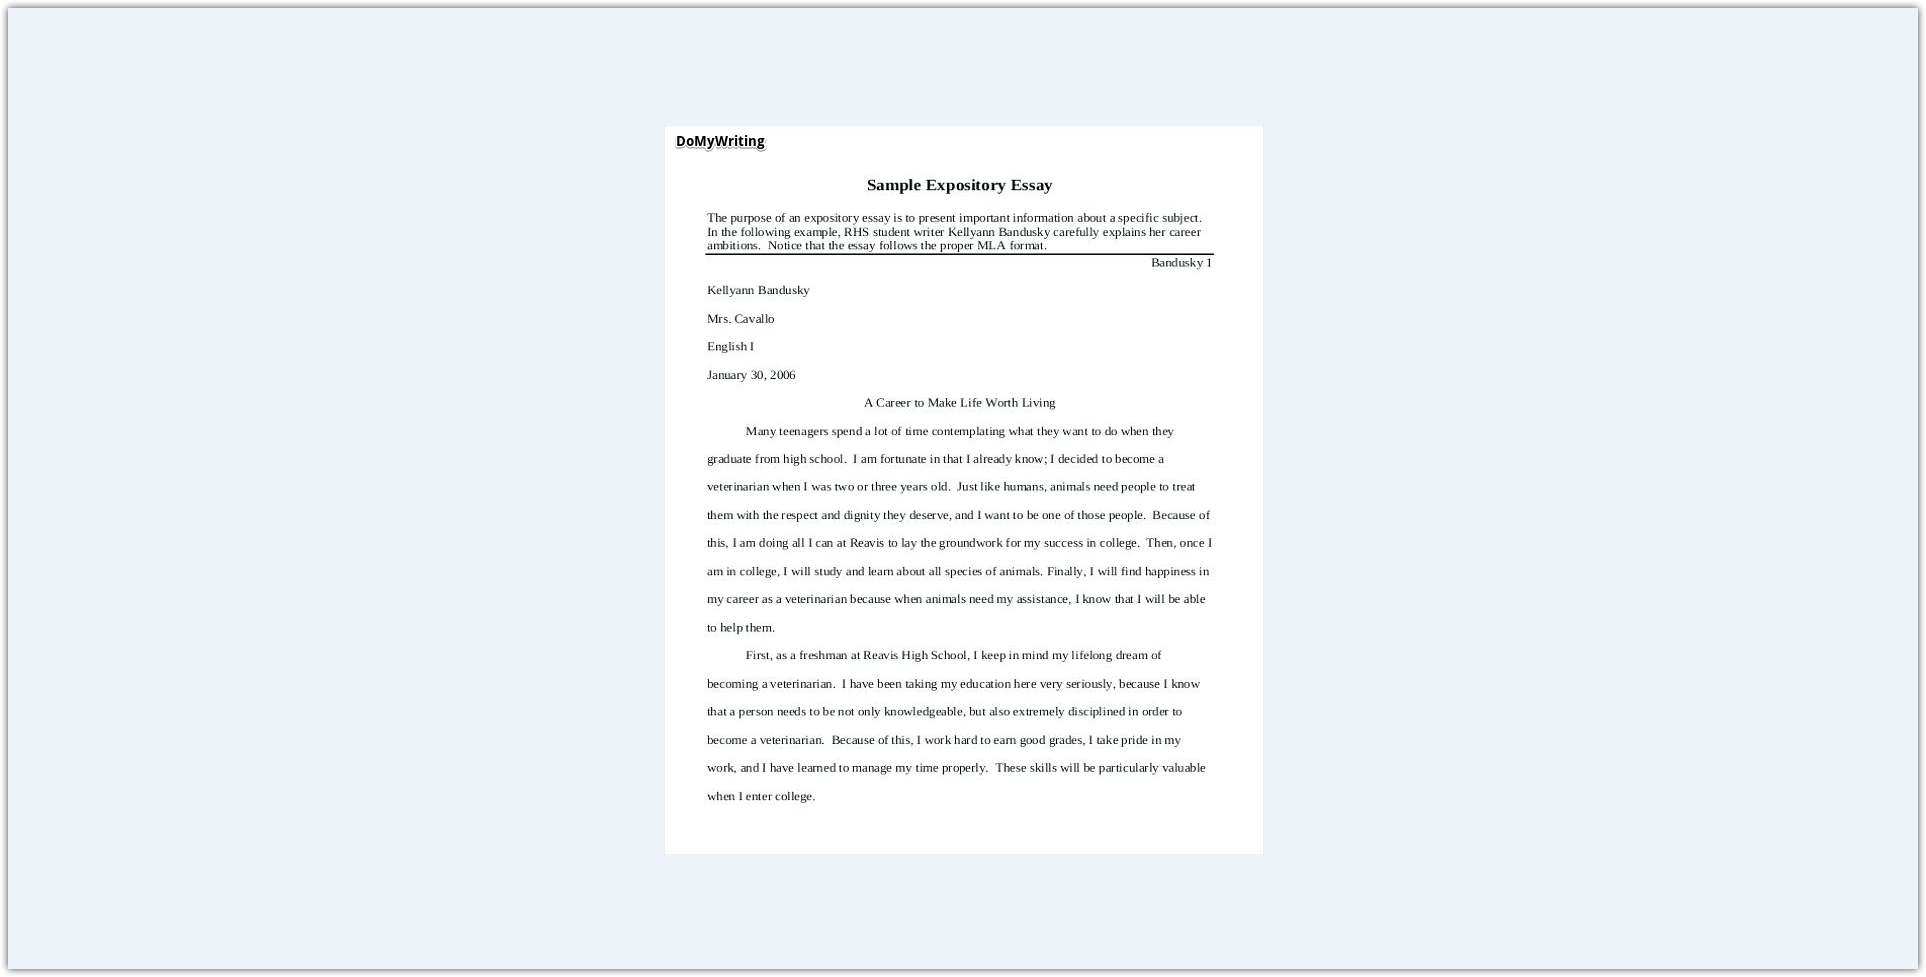 019 Expository Essay Samples Impressive Topics Grade 5 O Level Sample Essays For High School Students Full